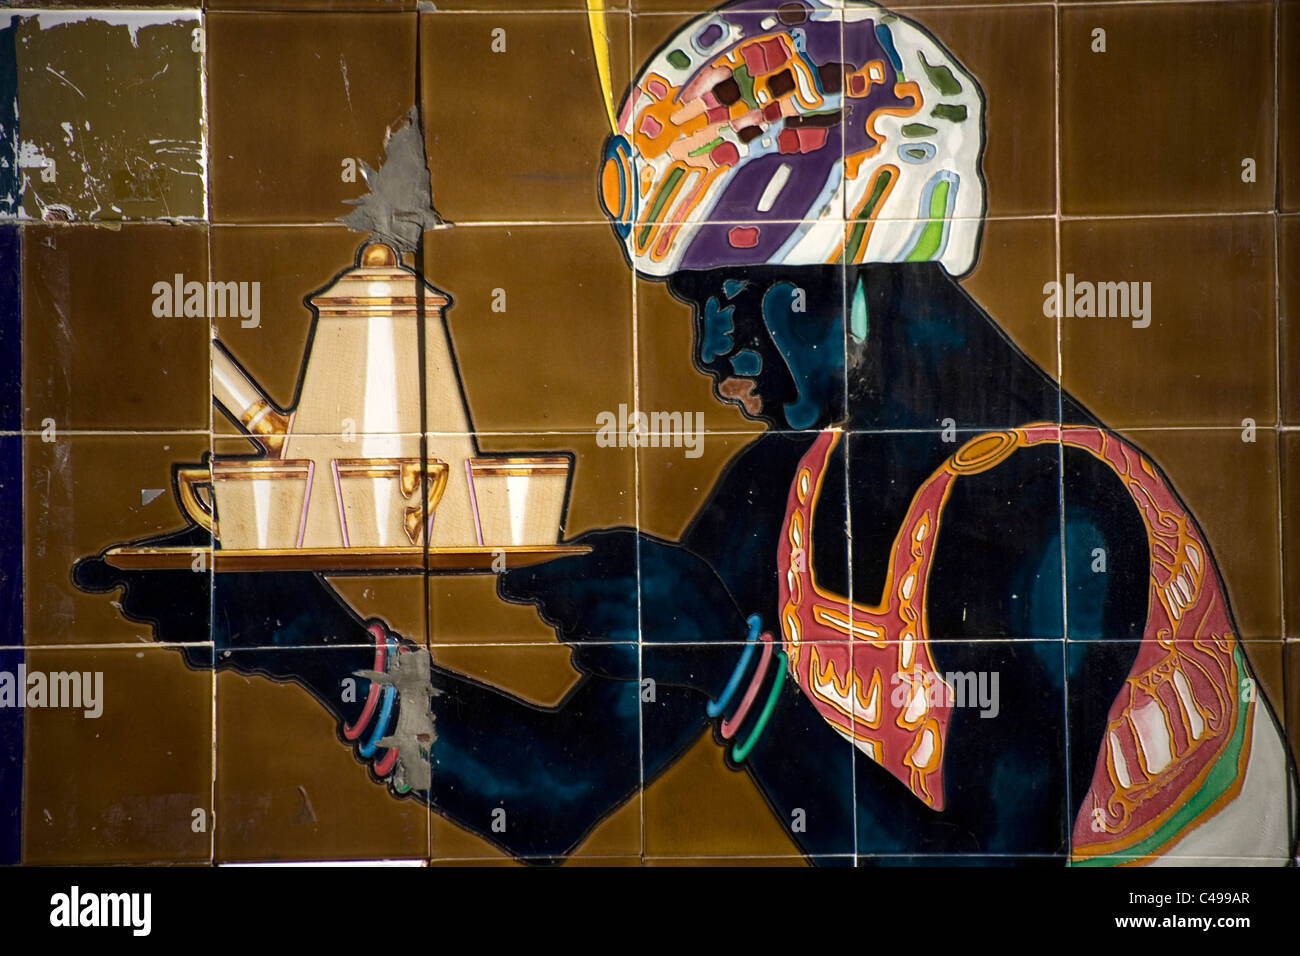 Decorative tiles of a black woman serving coffee decorate a wall in Merida, Badajoz province, Extremadura region, - Stock Image